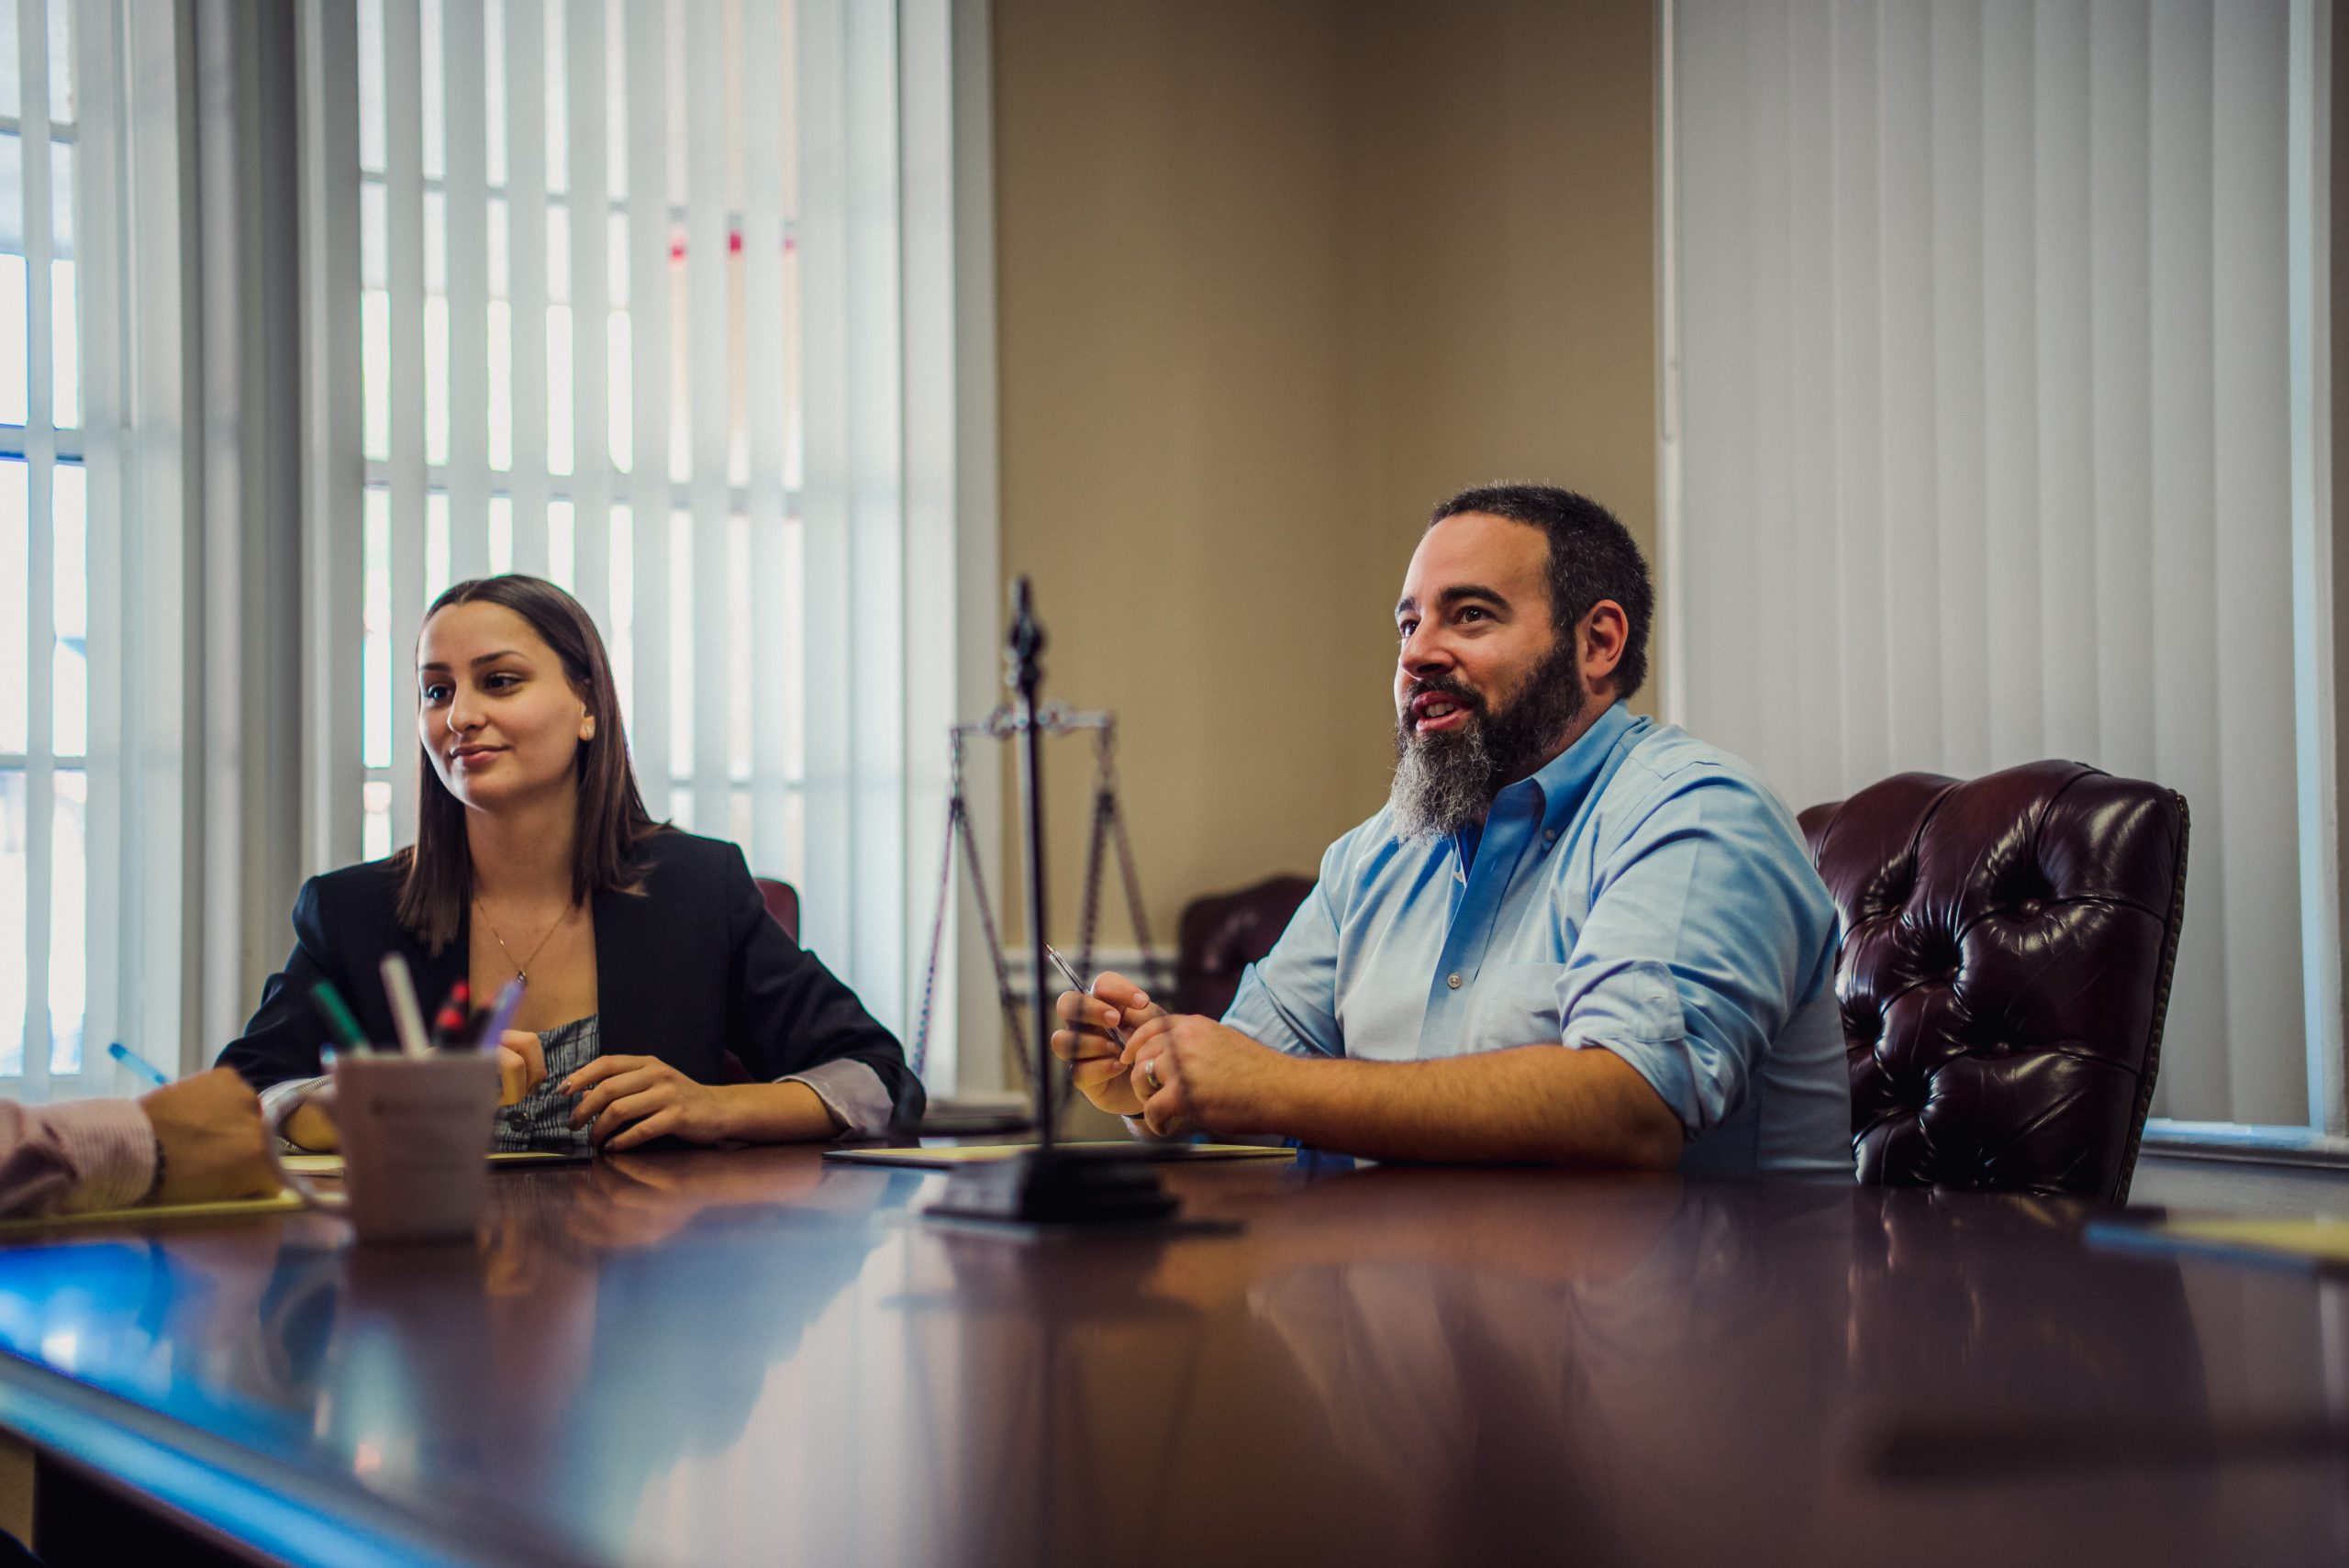 Orlando Business Attorneys working for you